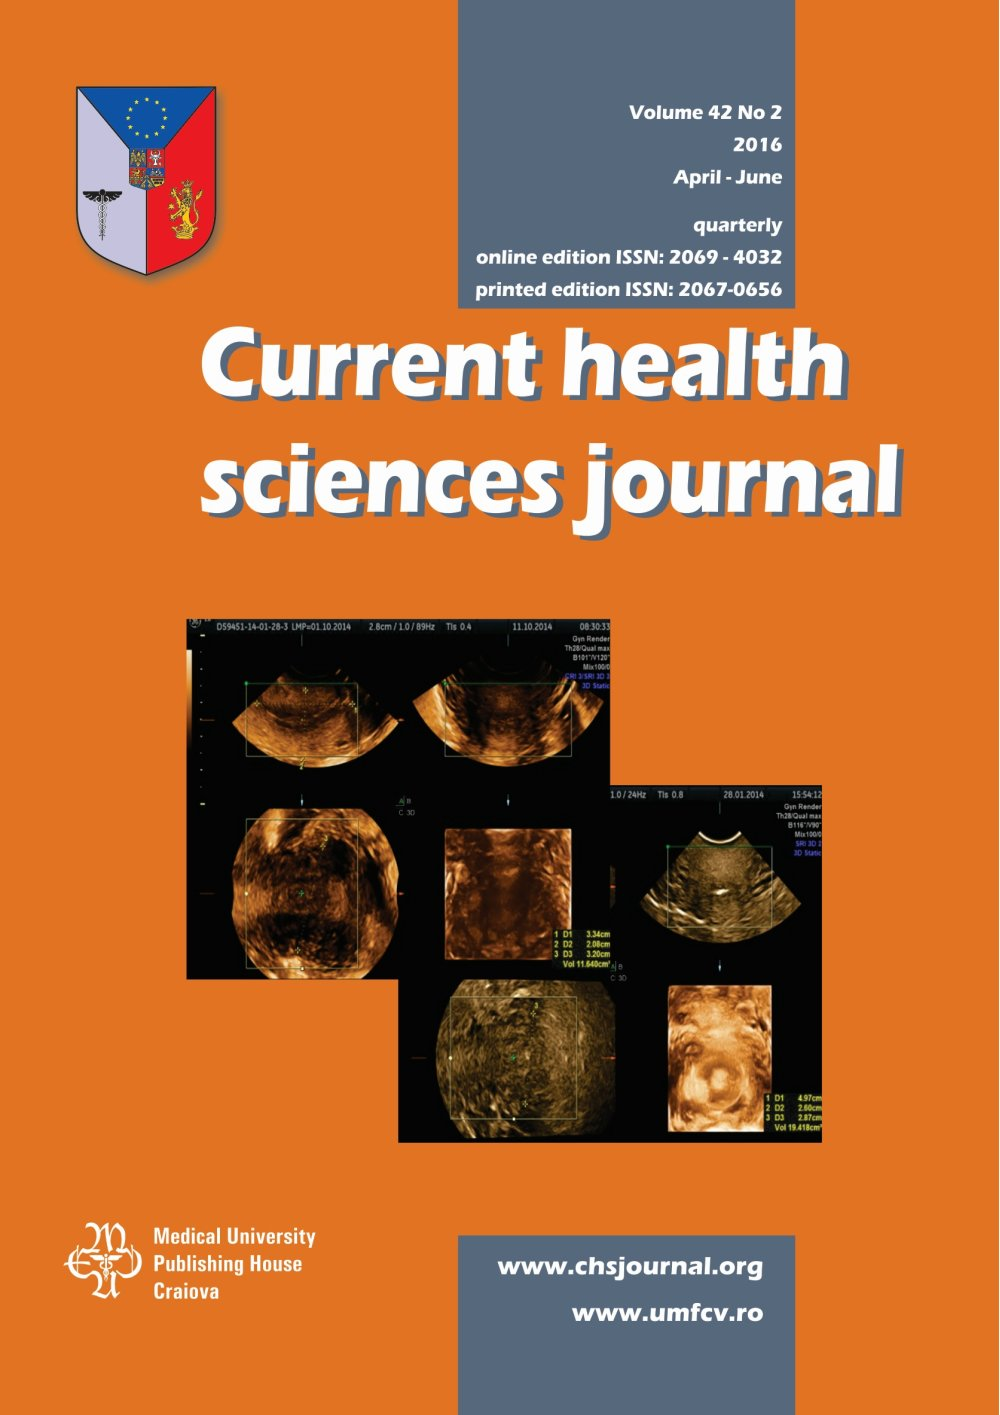 Current Health Sciences Journal, vol. 42 no. 2, 2016